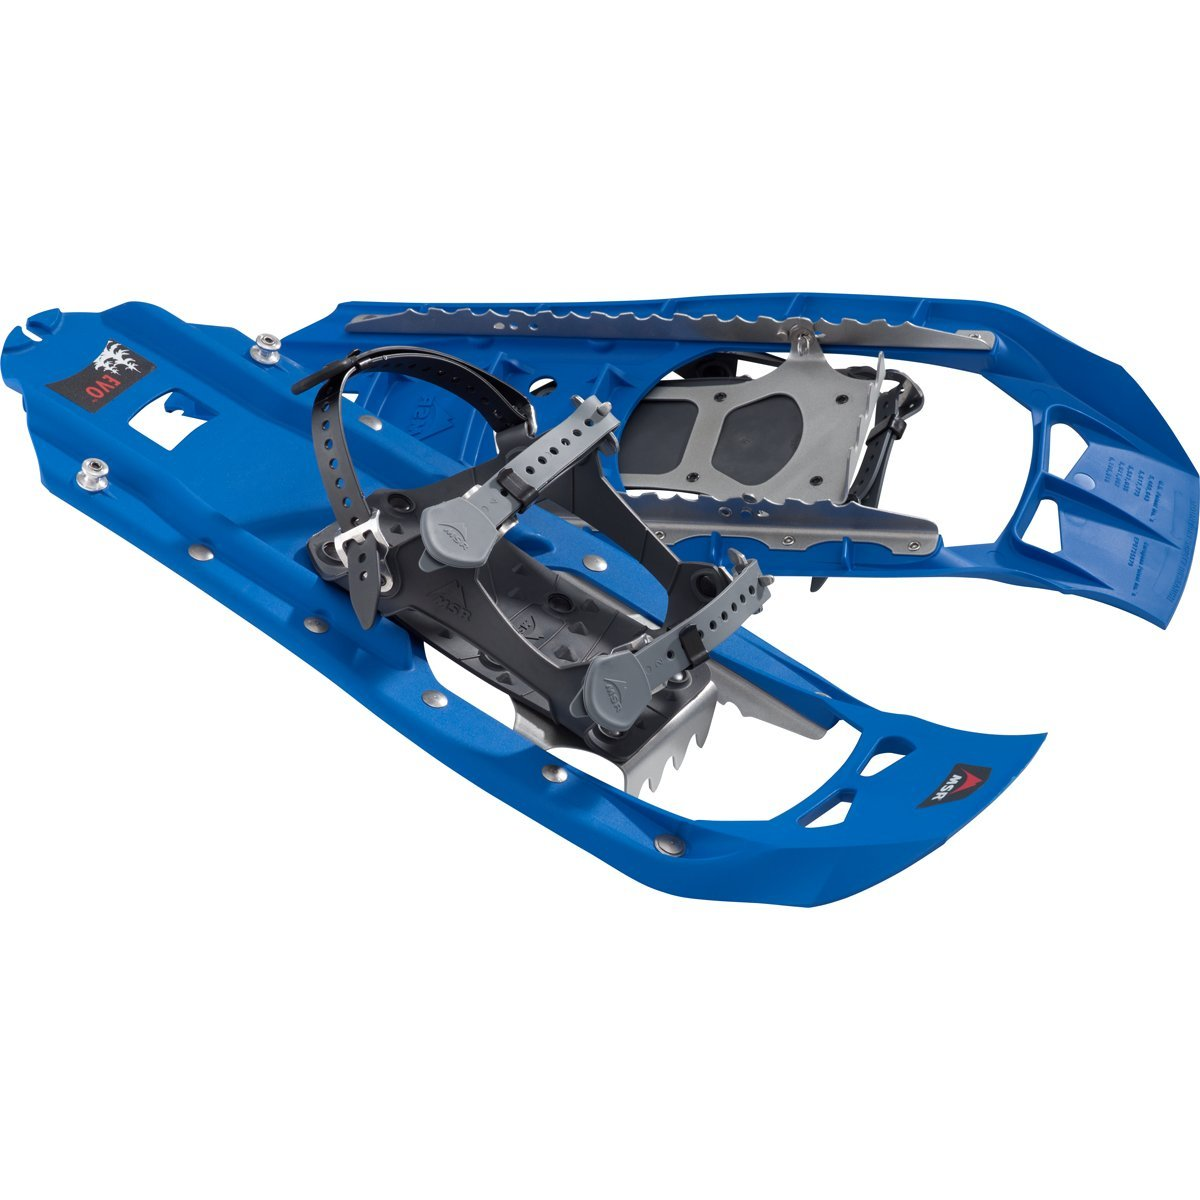 MSR Evo Trail 22-Inch Hiking Snowshoes, Dark Blue by MSR